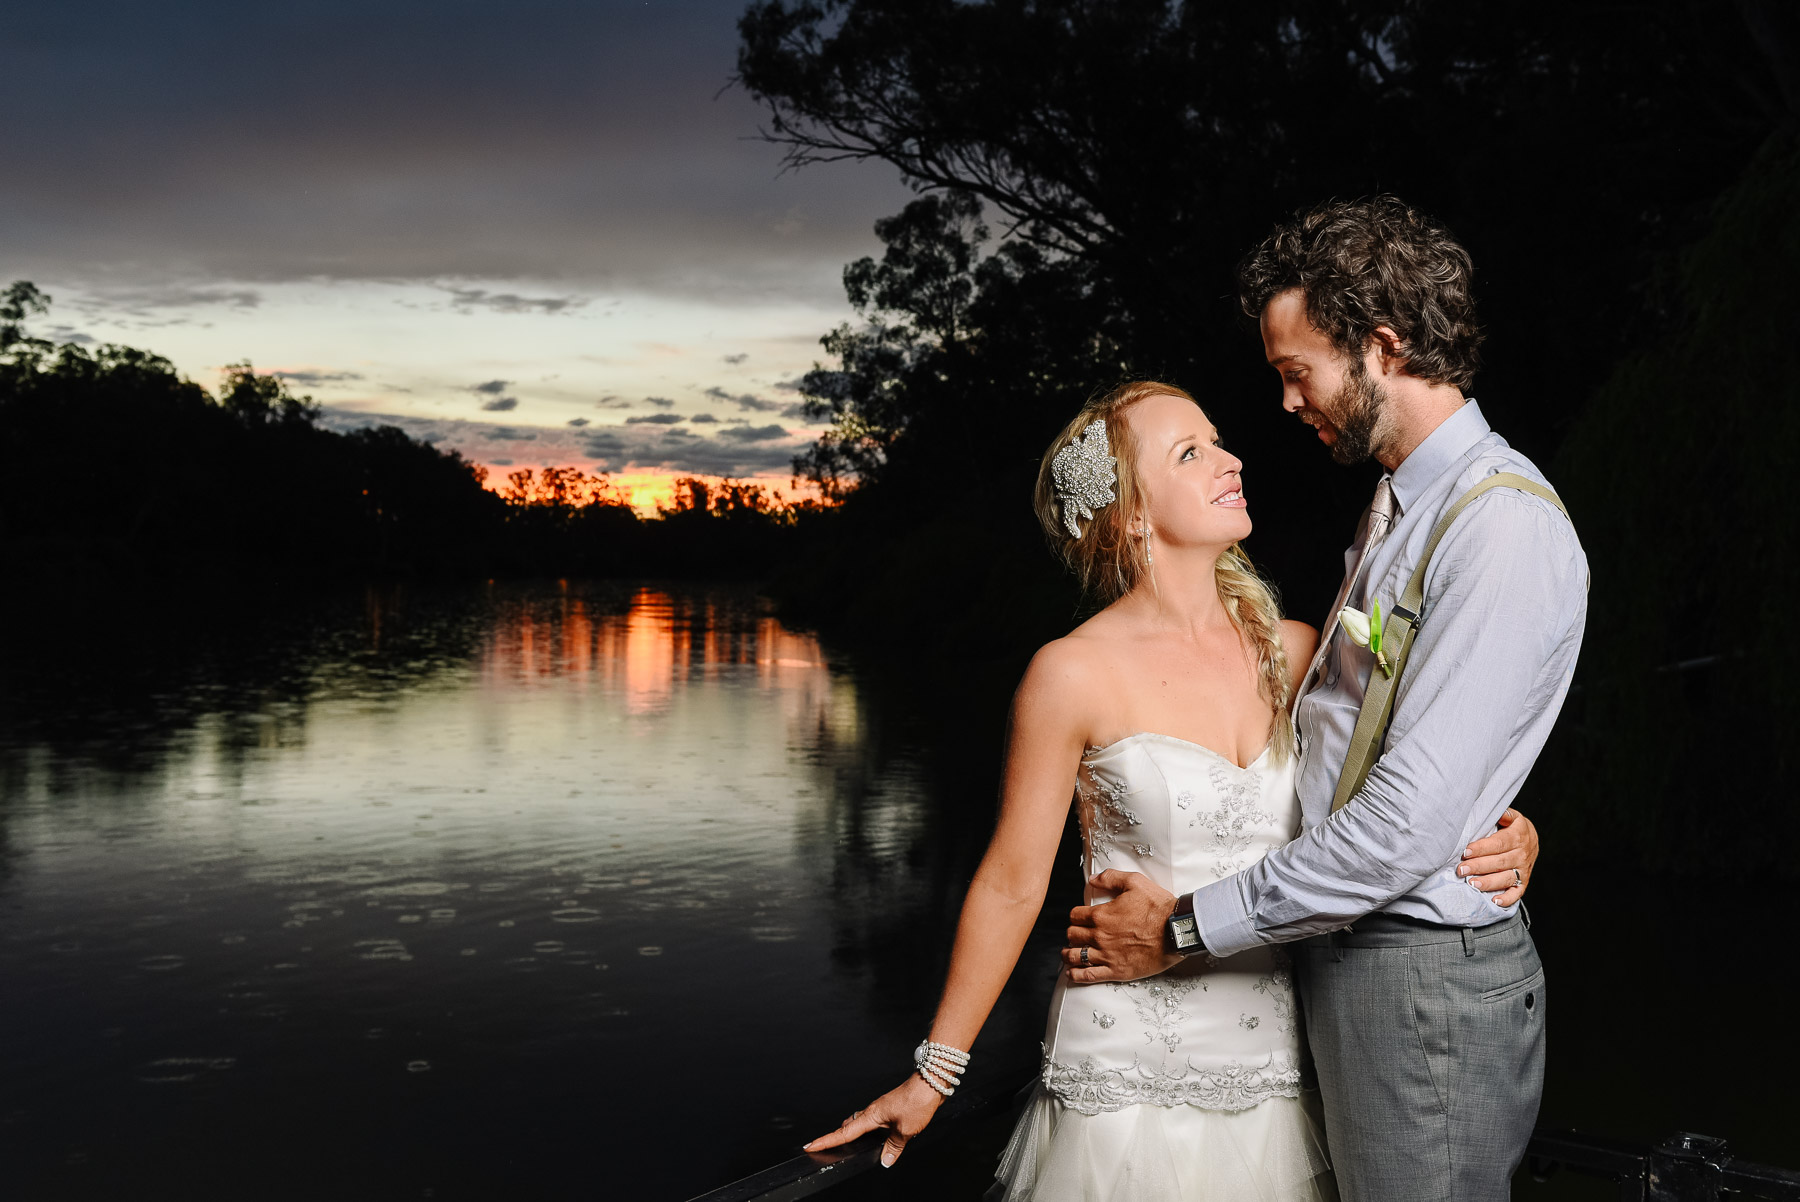 Sunset Wedding Photography by the Murray River at Perricoota Station Echuca